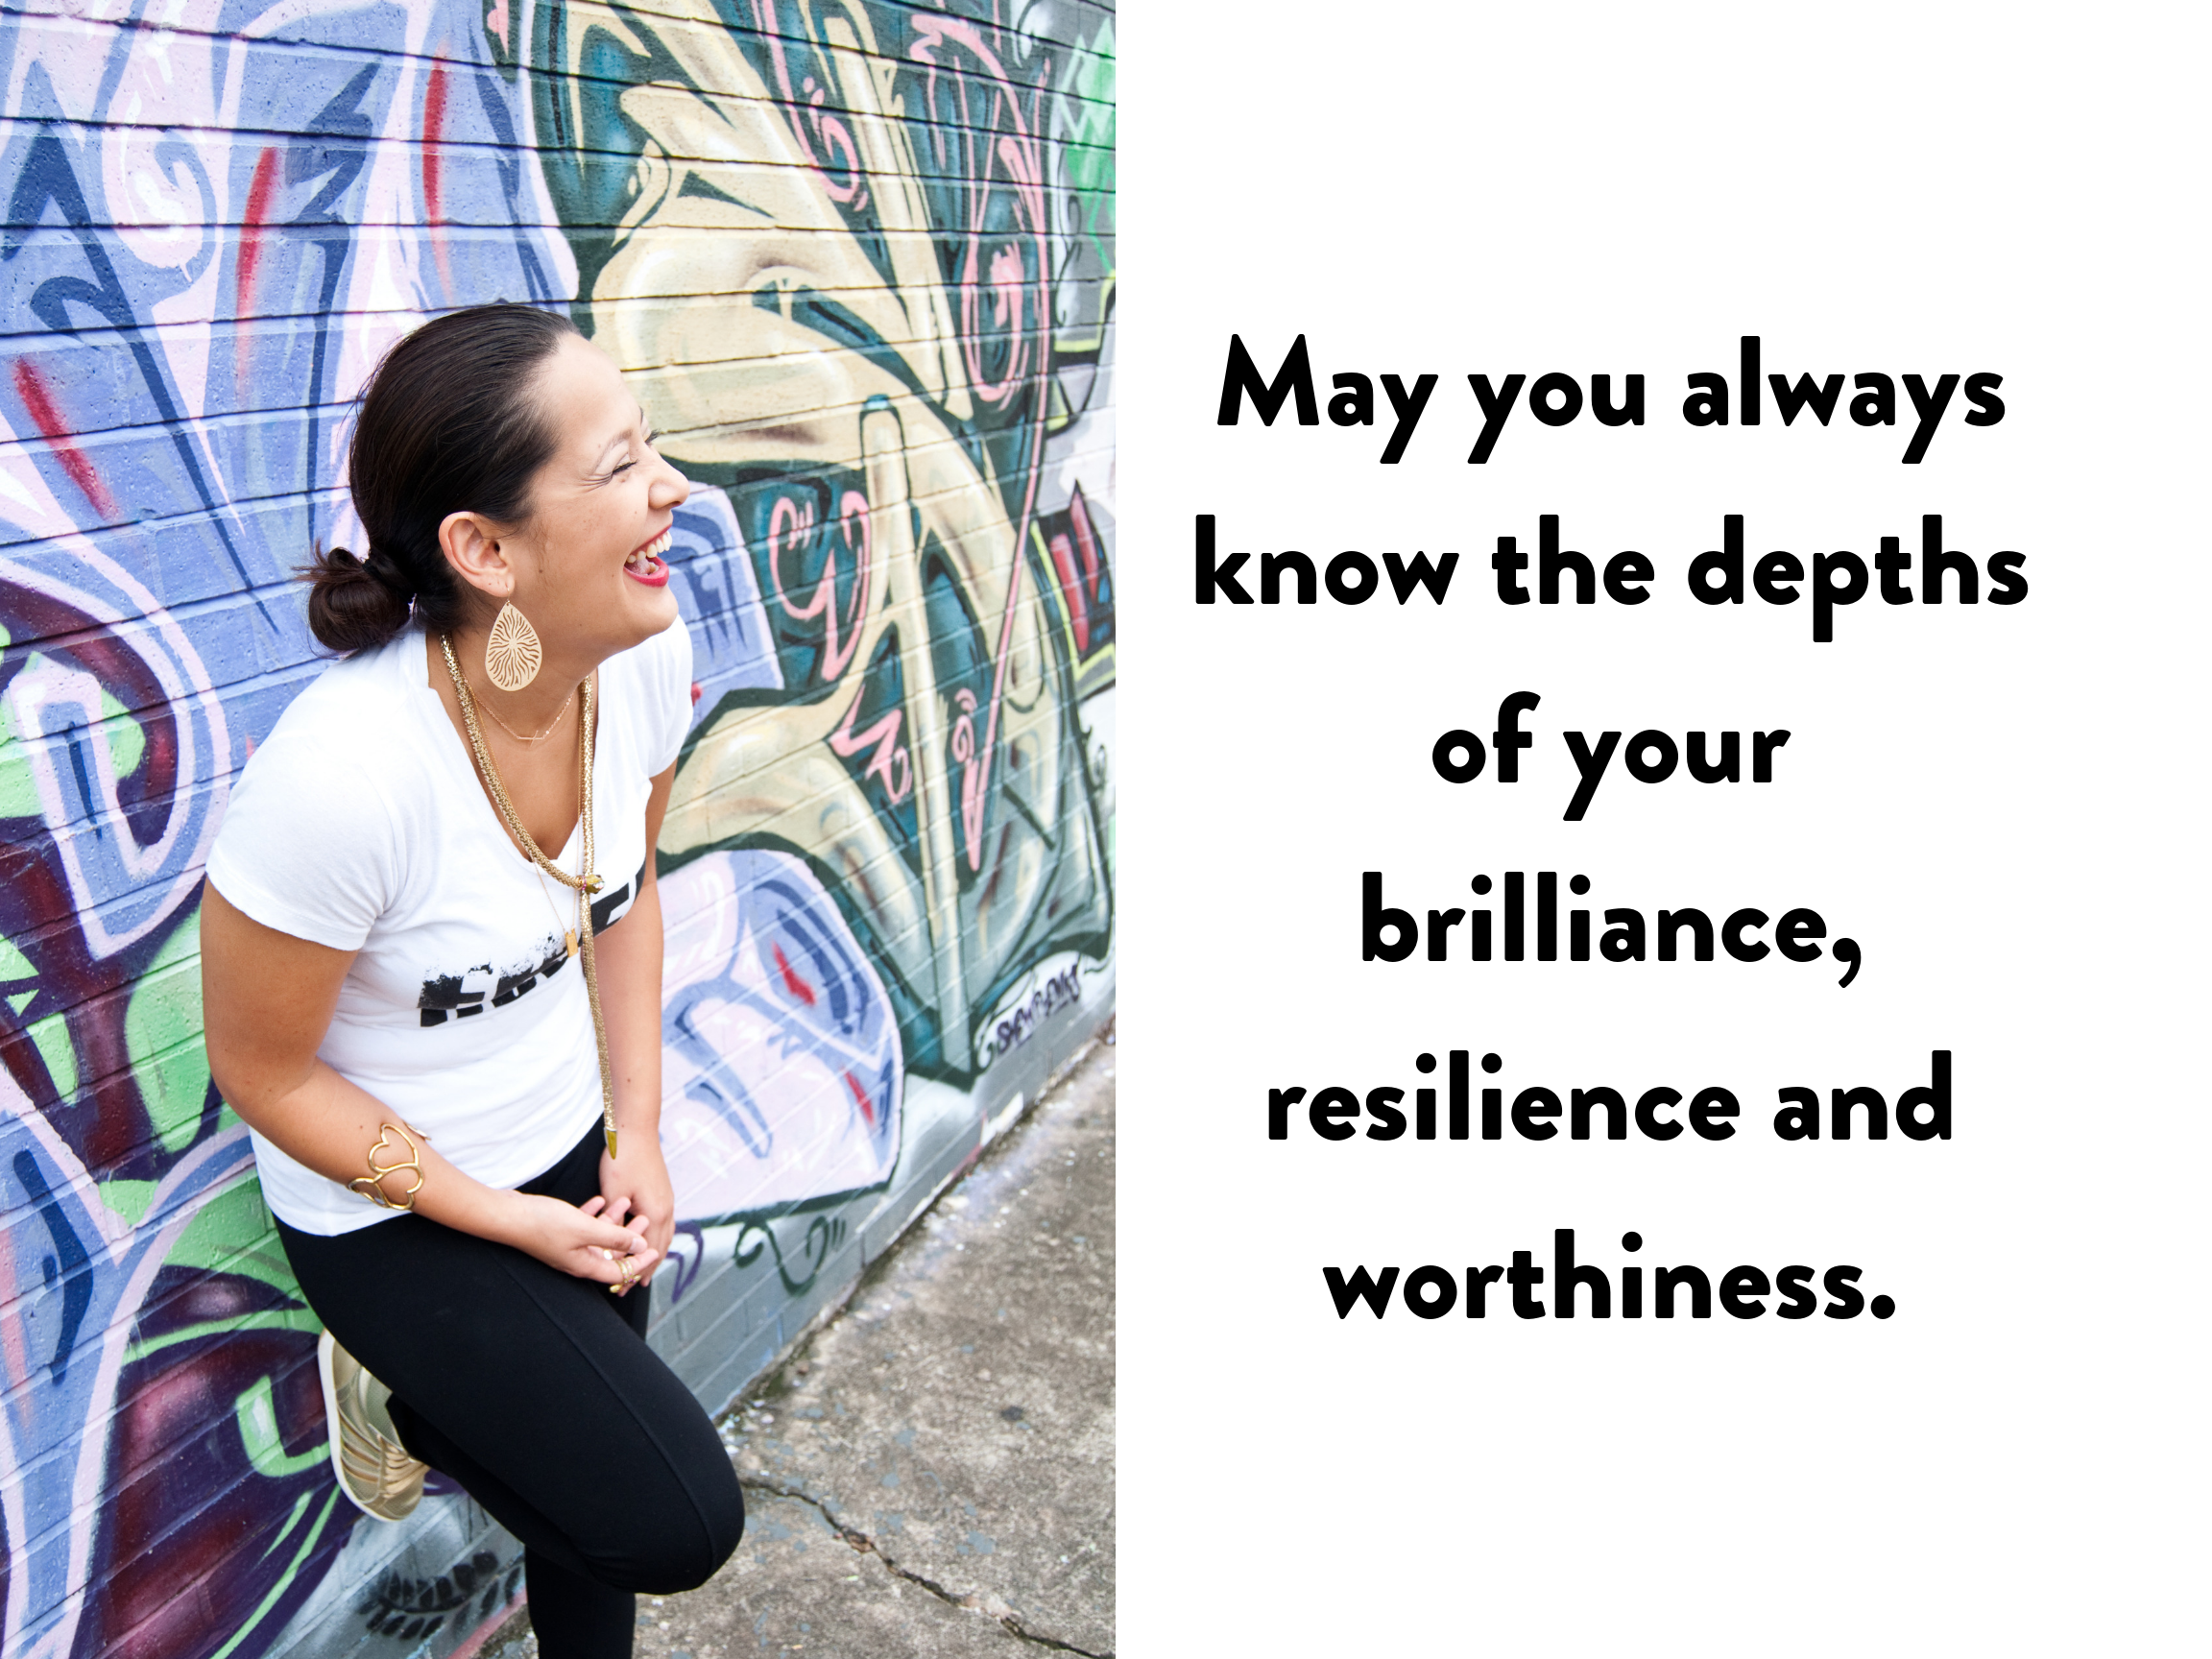 May you always know the depths of your brilliance, resilience and worthiness. -- LaTisha Cotto